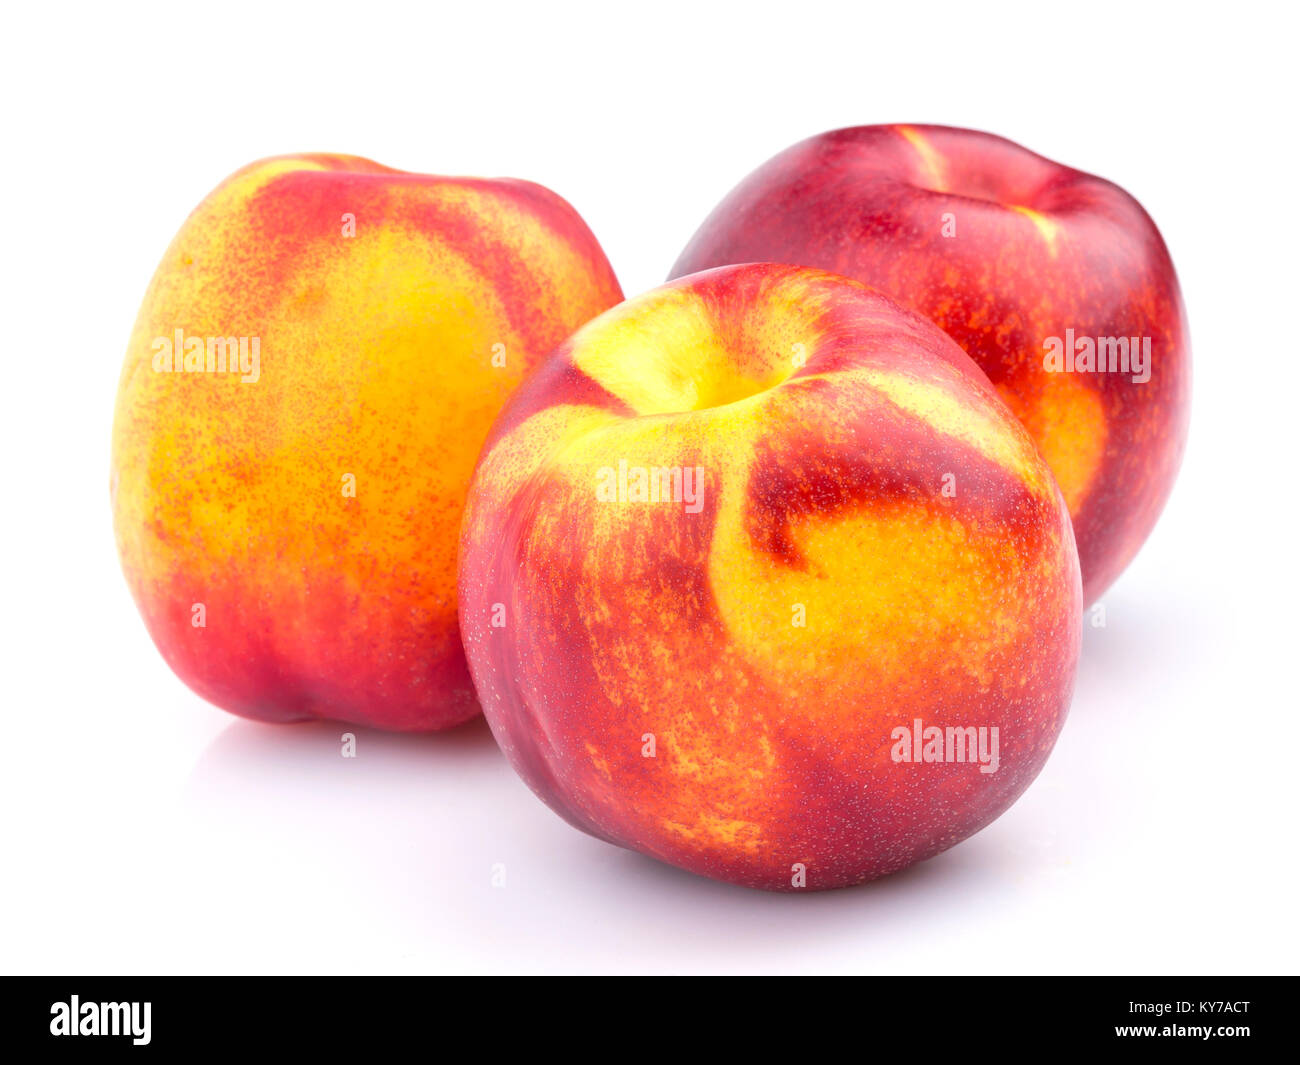 Whole nectarine fruit isolated on white background - Stock Image